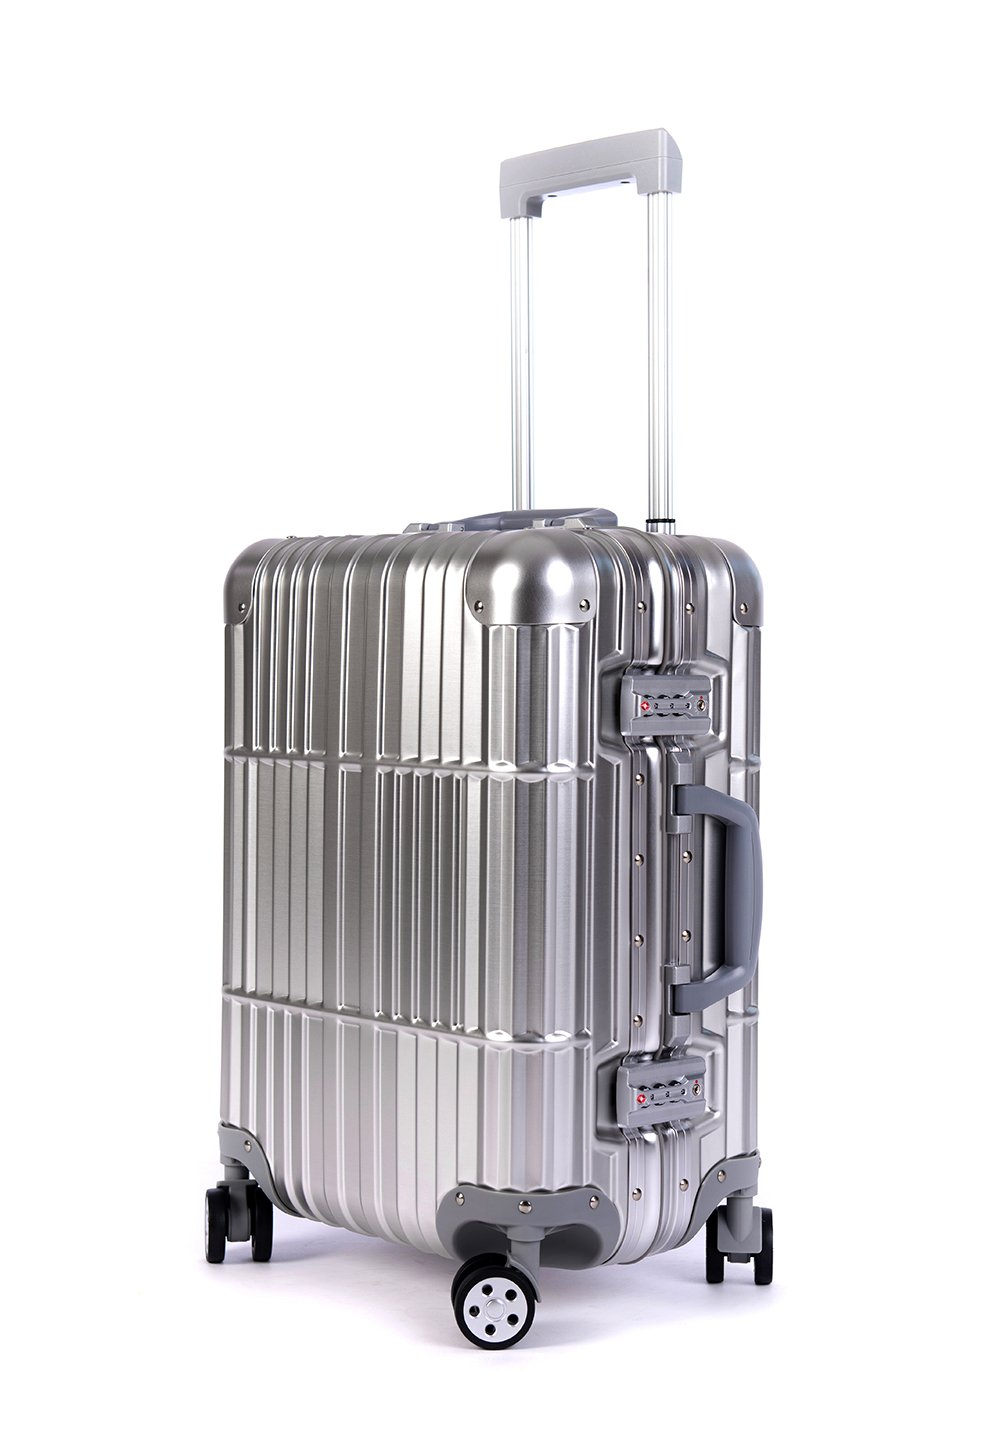 Cloud 9 - All Aluminum Luxury Hard Case Carry-On 20'' Durable with 360 Degree 4 Wheel Spinner TSA Approved (FULL ALUMINUM)